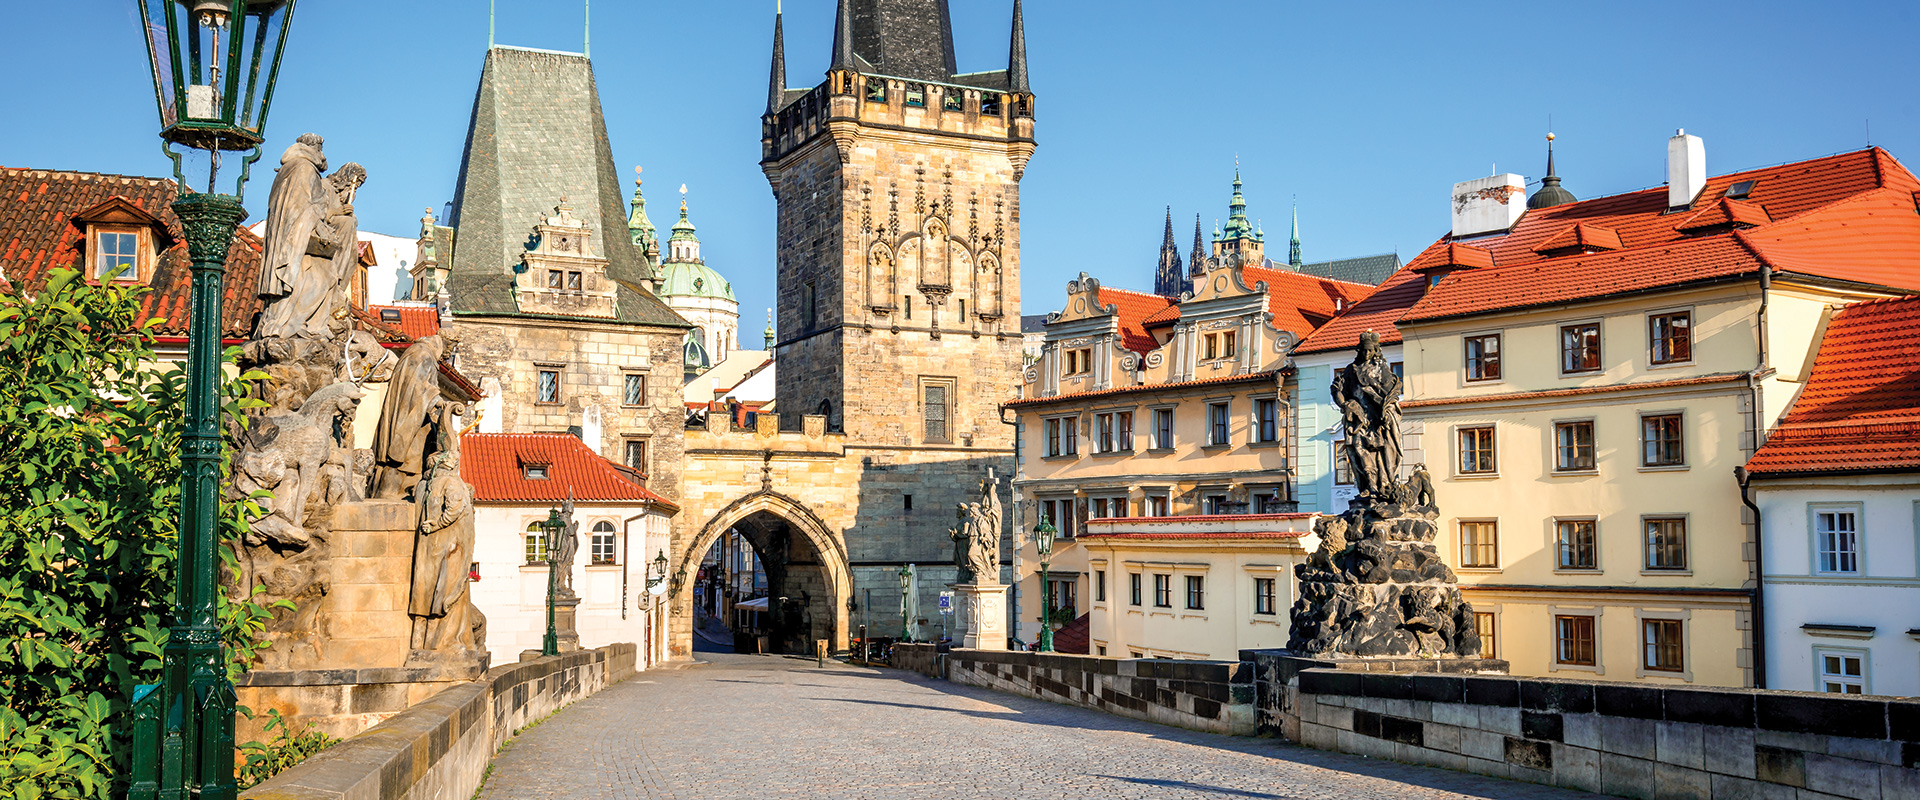 Fall in love with Prague.